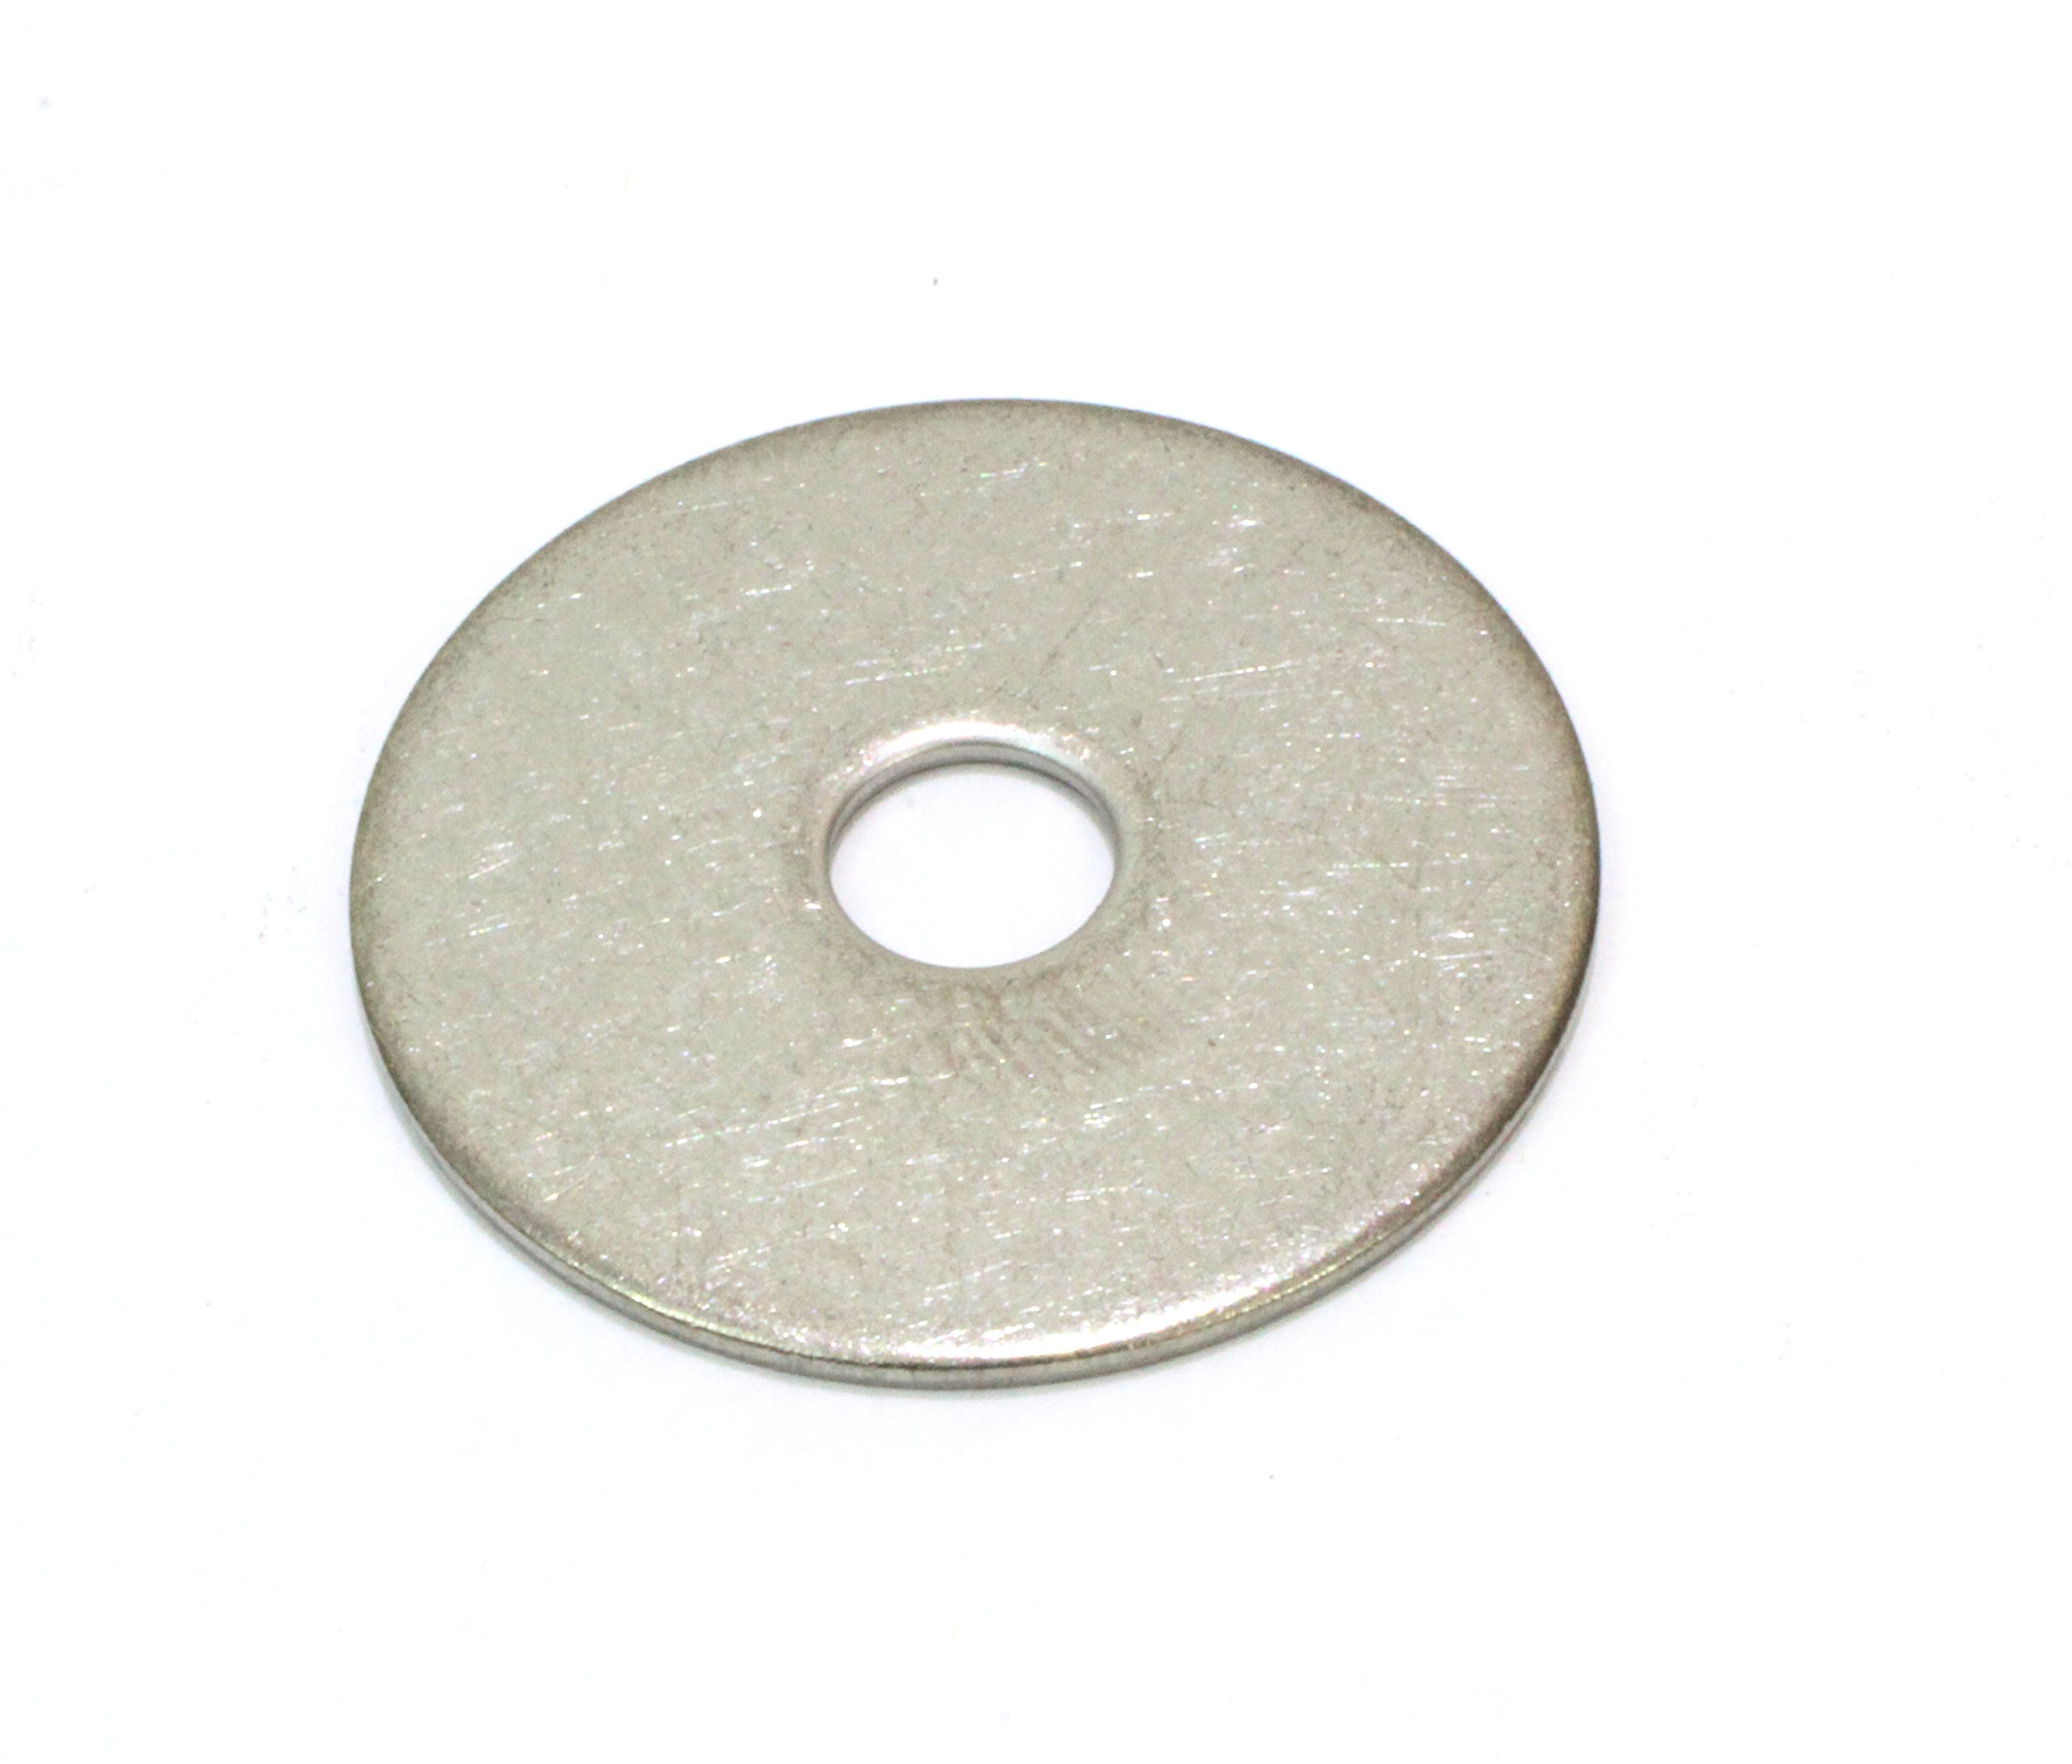 1/4'' x 1'' OD Stainless Fender Washer, (100 Pack) - Choose Size, By Bolt Dropper, 18-8 (304) Stainless Steel.